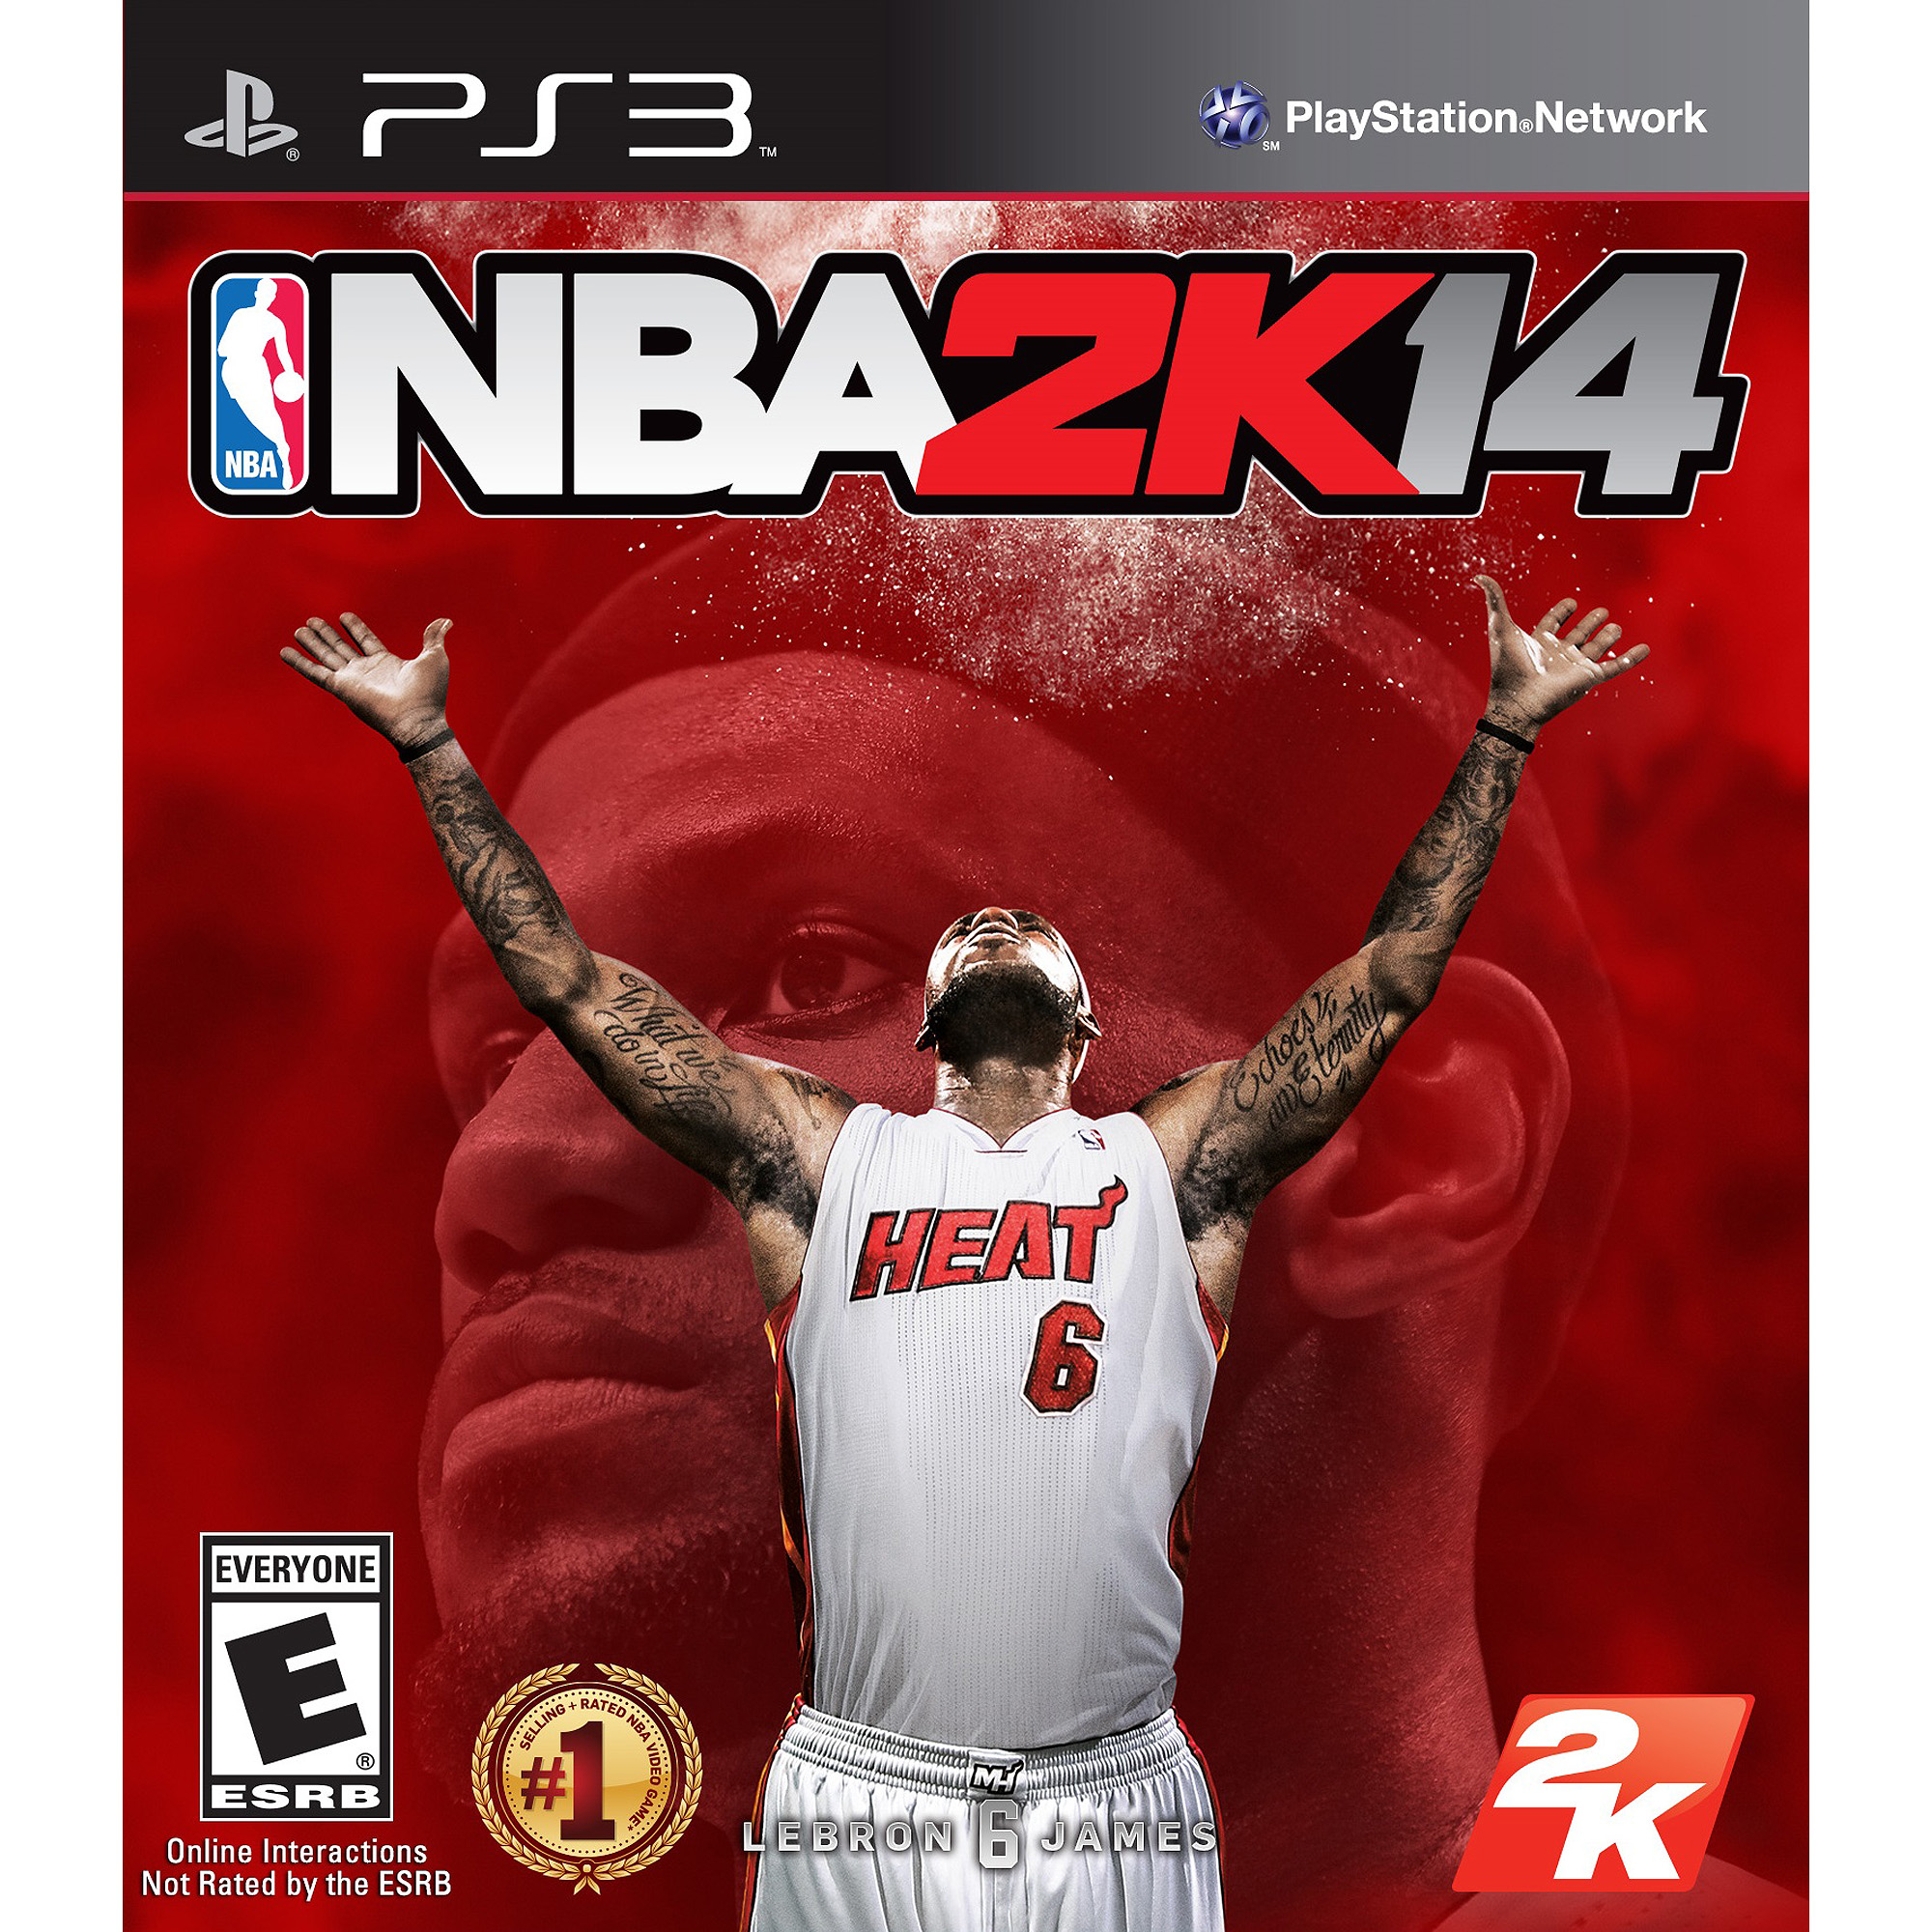 NBA 2K14 (PS3) - Pre-Owned